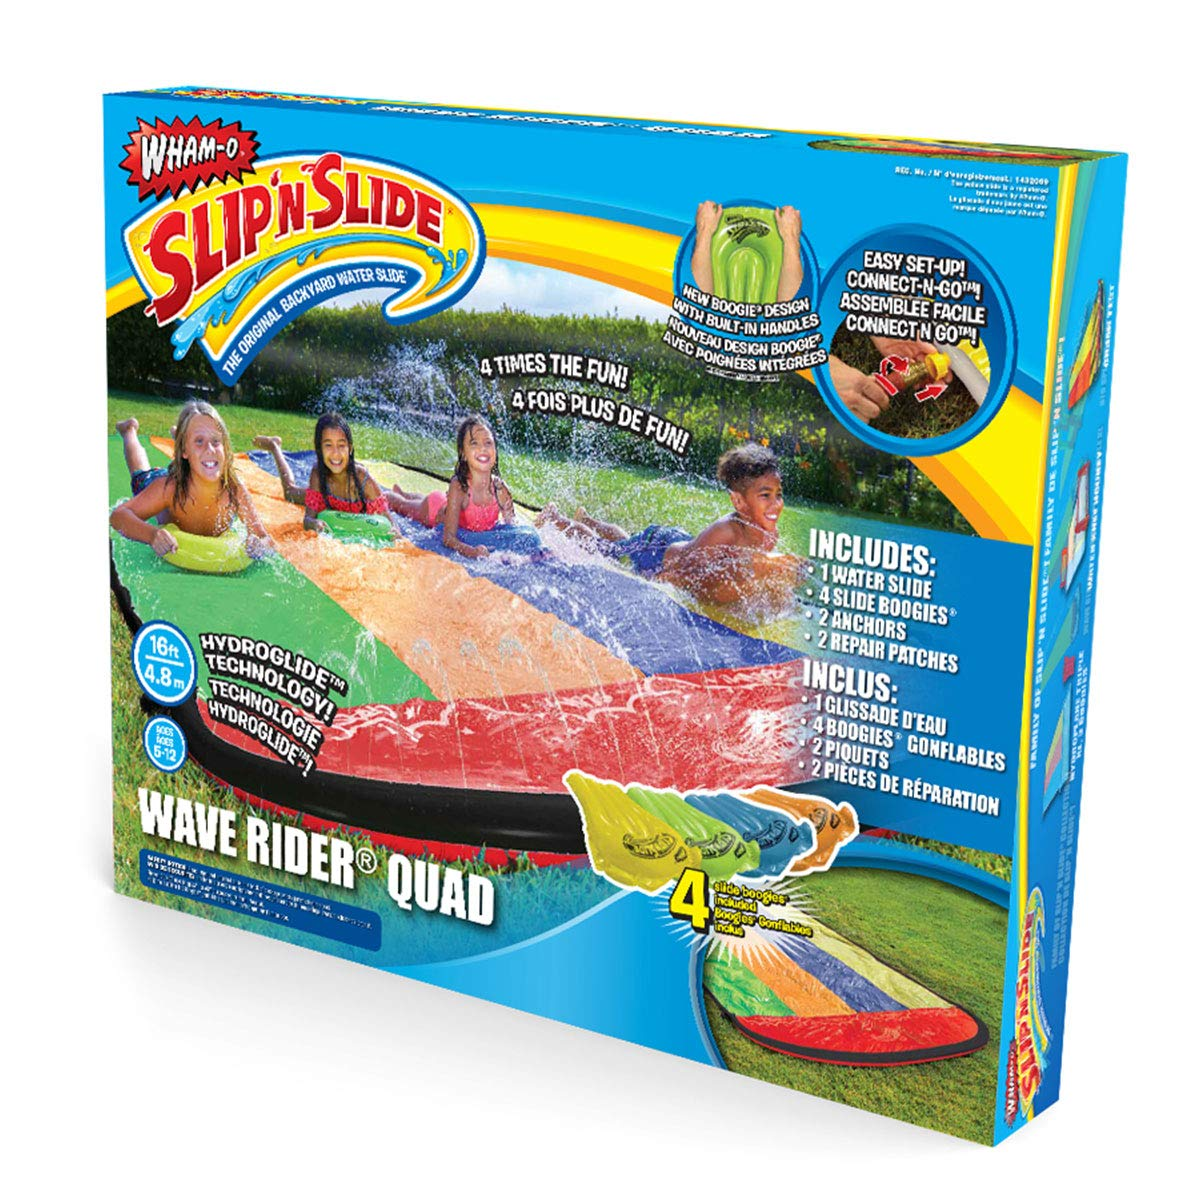 Wham-O Quad Racer Waterslide by Wham-O